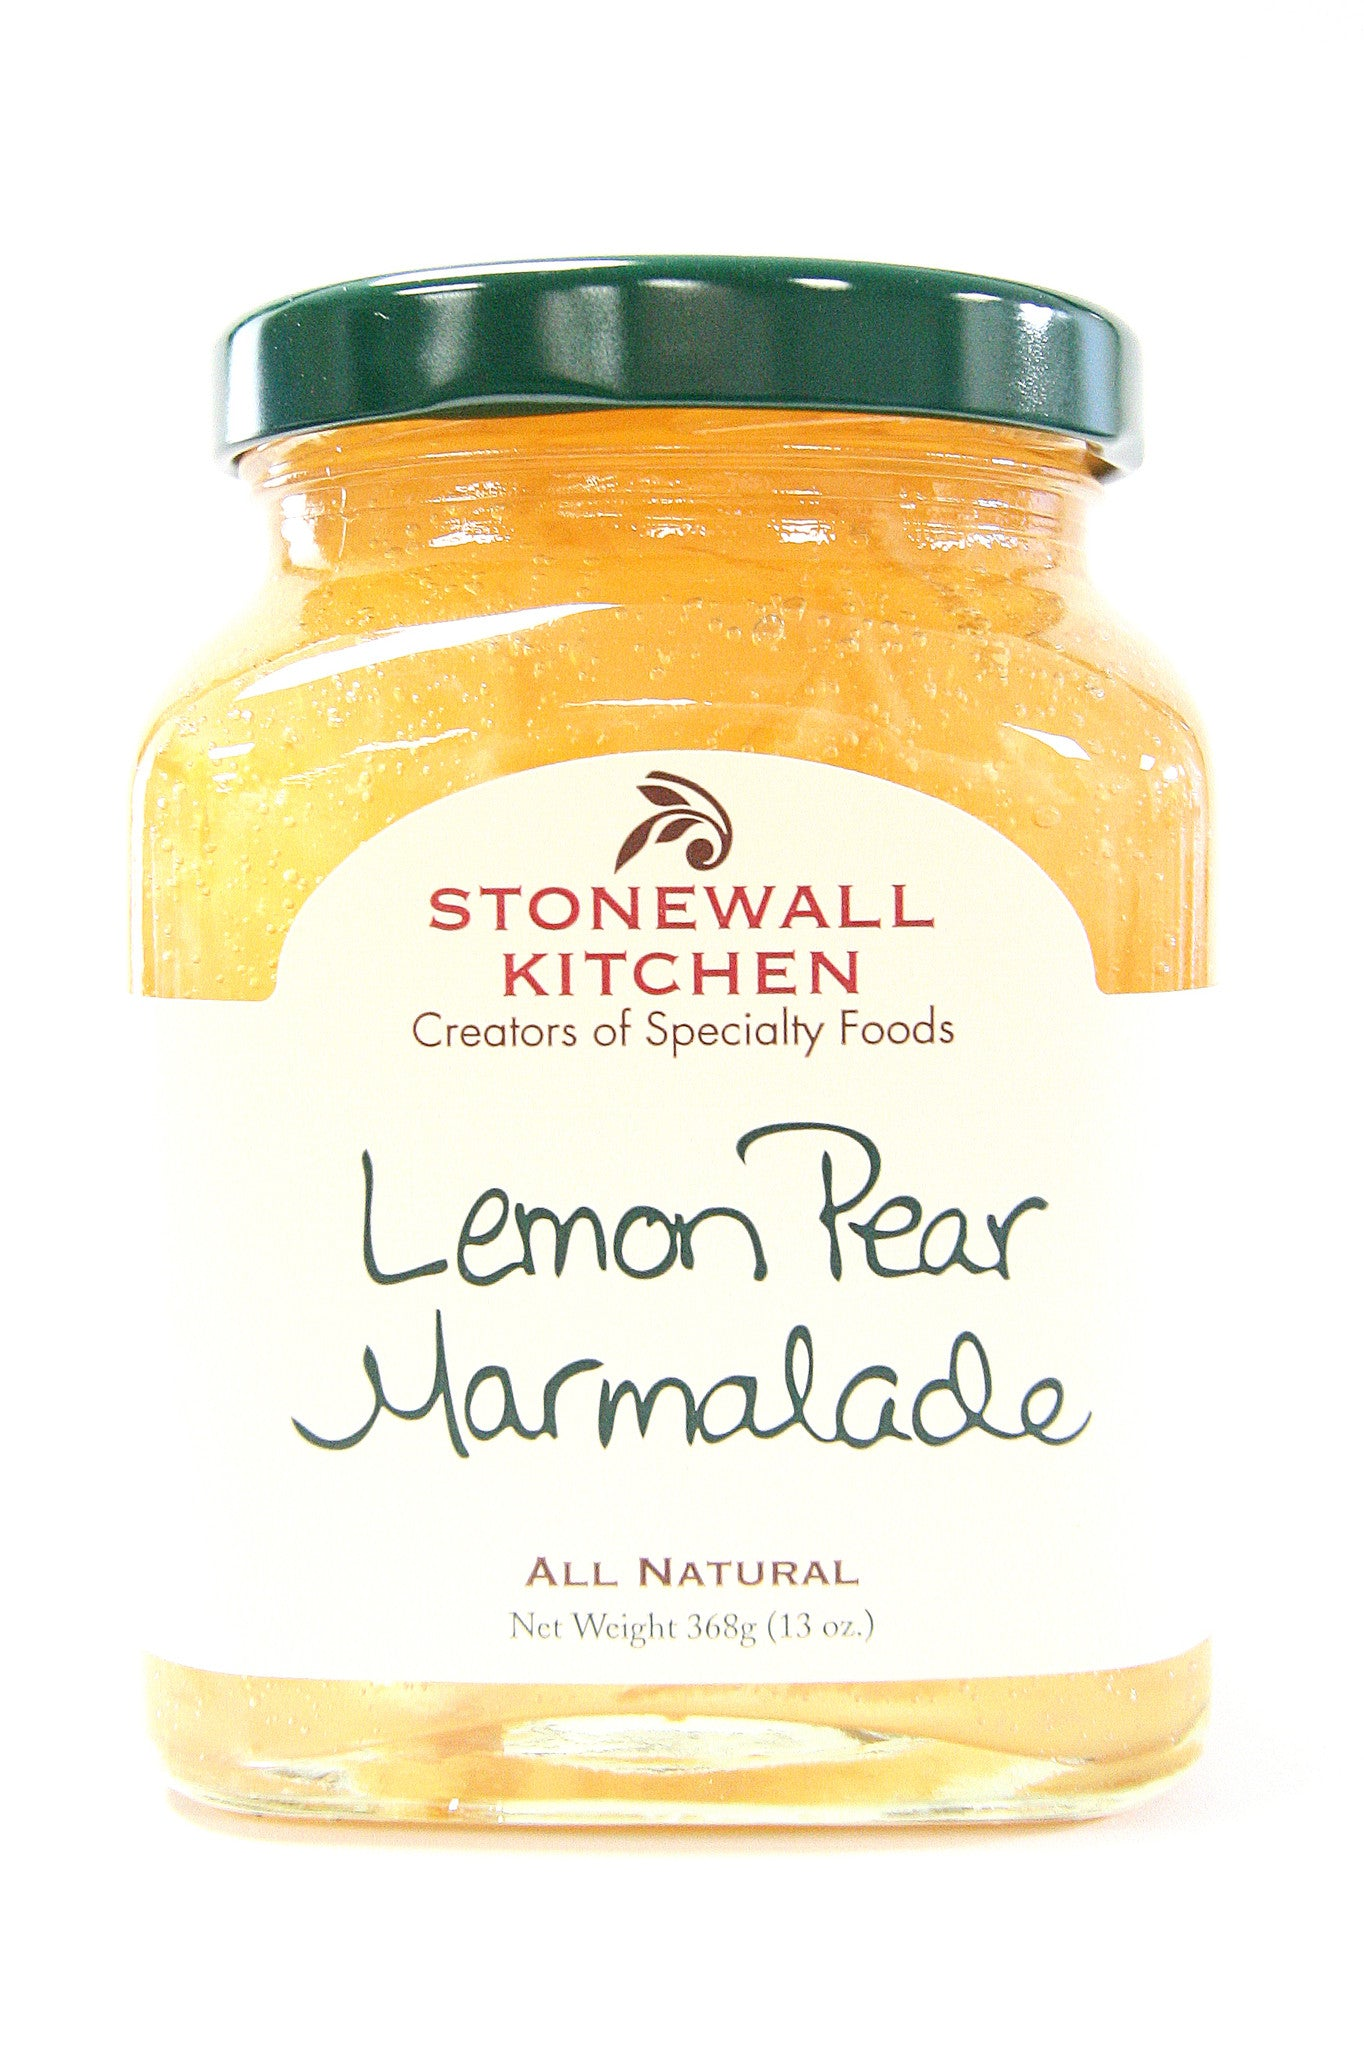 Stonewall Kitchen Lemon Pear Marmalade countrymercantile